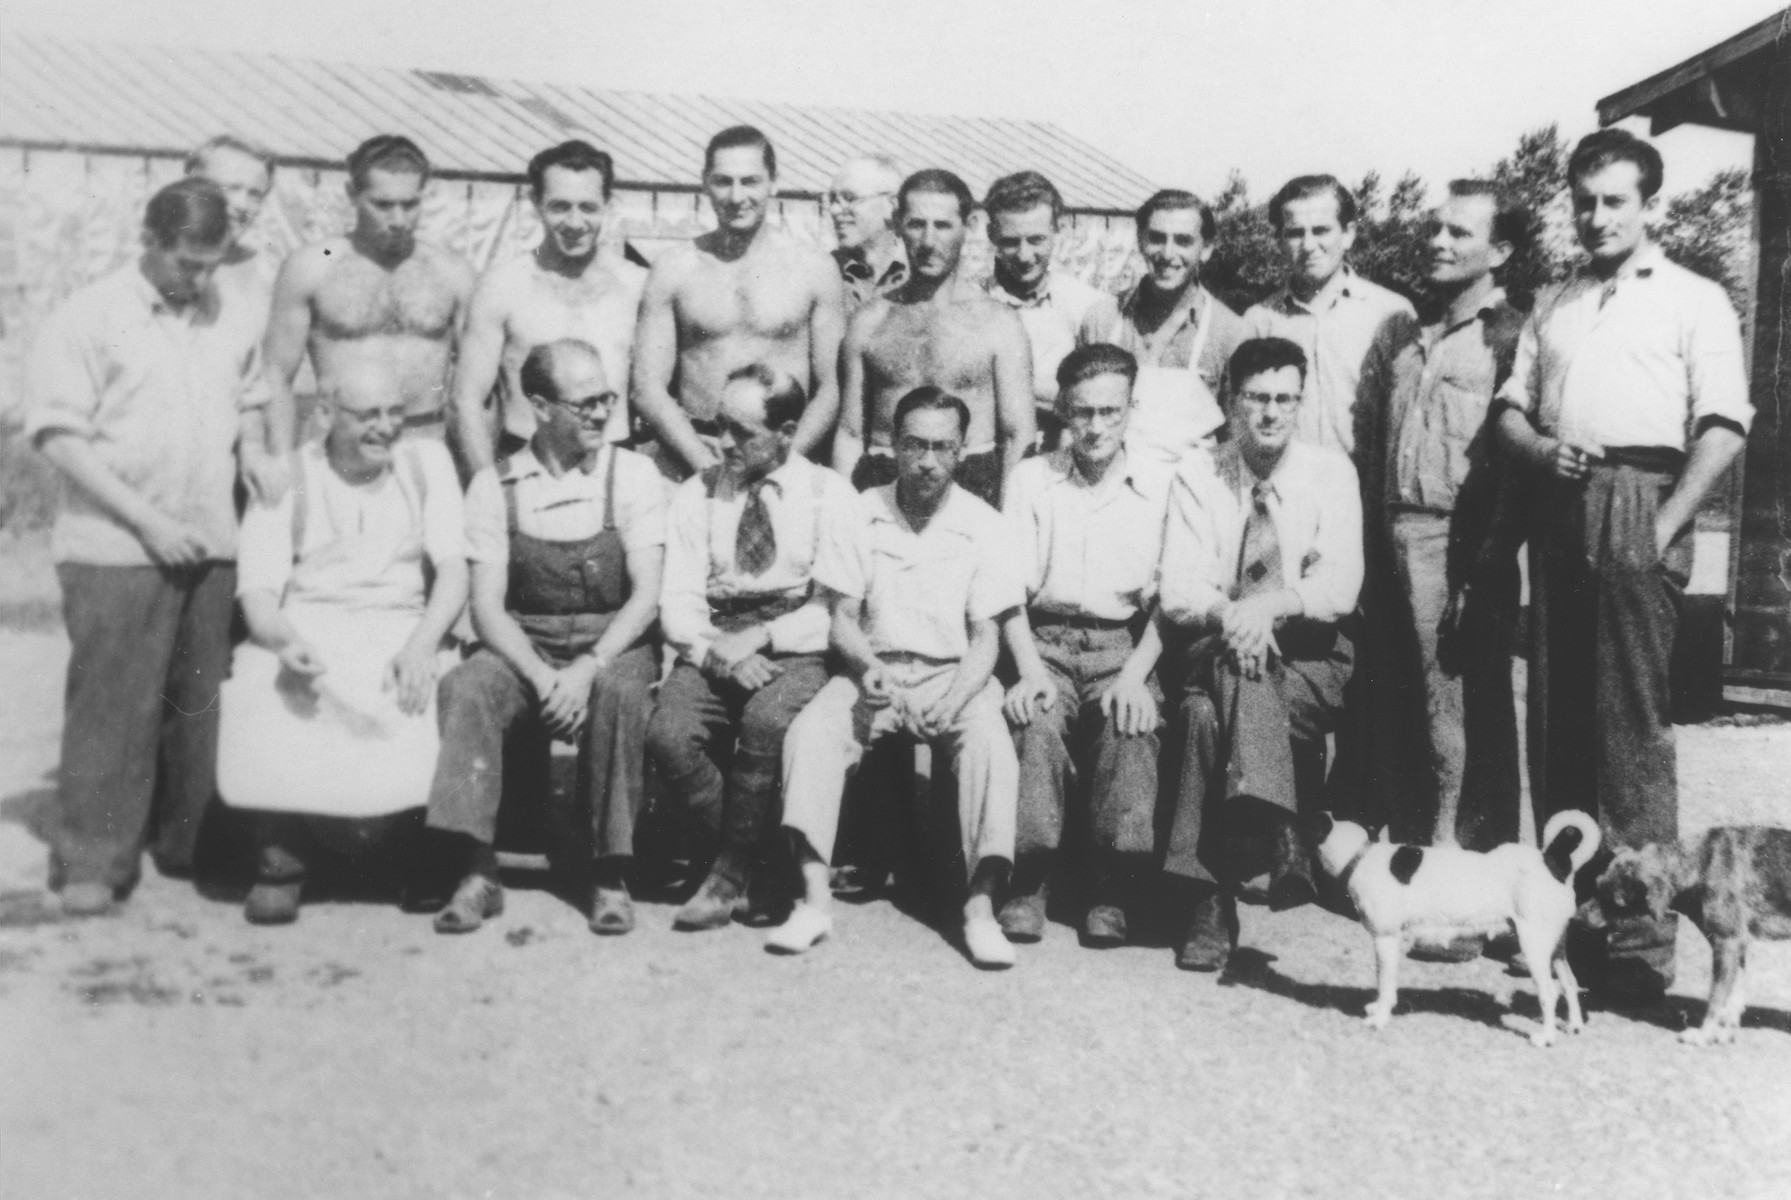 Group portrait of foreign workers assigned to the food supply department at the Gurs internment camp.  Two of those pictured, Bustamante and Vigo, were former members of the Spanish Republican army.  Vigo had been the mayor of Badalona.  All the others were Jewish.   Seated from left to right are Jakob Dreyfus, Bustamante, Francois Marine, Pedro Vigo Giro, Szlama Szmaragd and René Karschon.  Standing are Vogelsang, Walter Todt, Ossi Kohut, Sepp Grumkin, Hayek, Reinach, Alex Gruber, Franz Wrobel, Pauli Kupferberg, Kurt de Jonghe, Zaiakowski and Kurt Mautner.